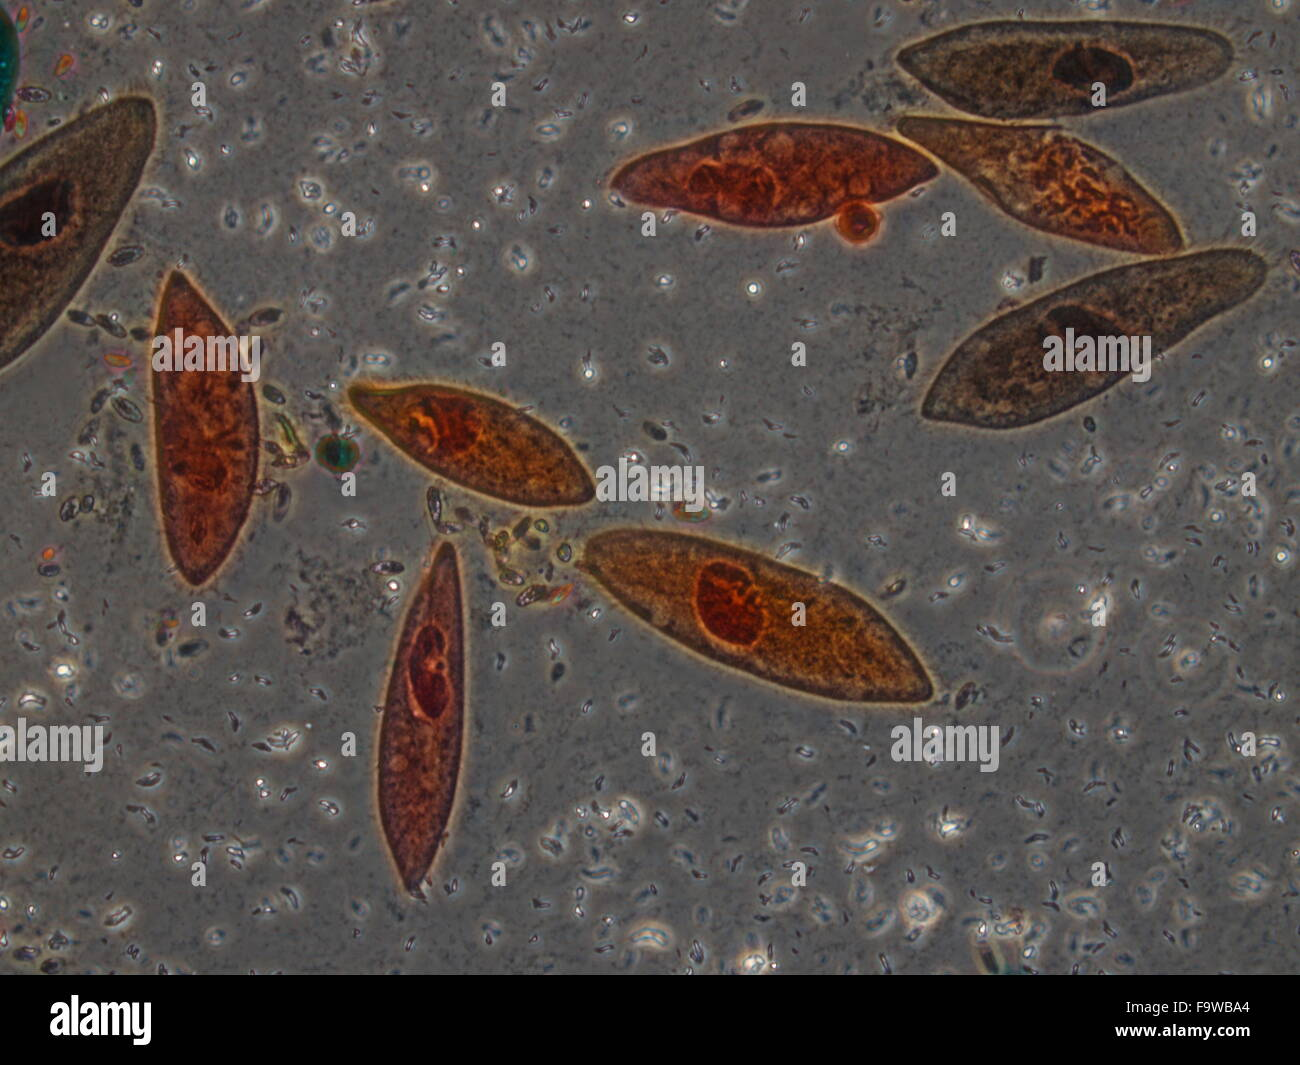 Biological sample cells and bacteria, plant, microb under ...